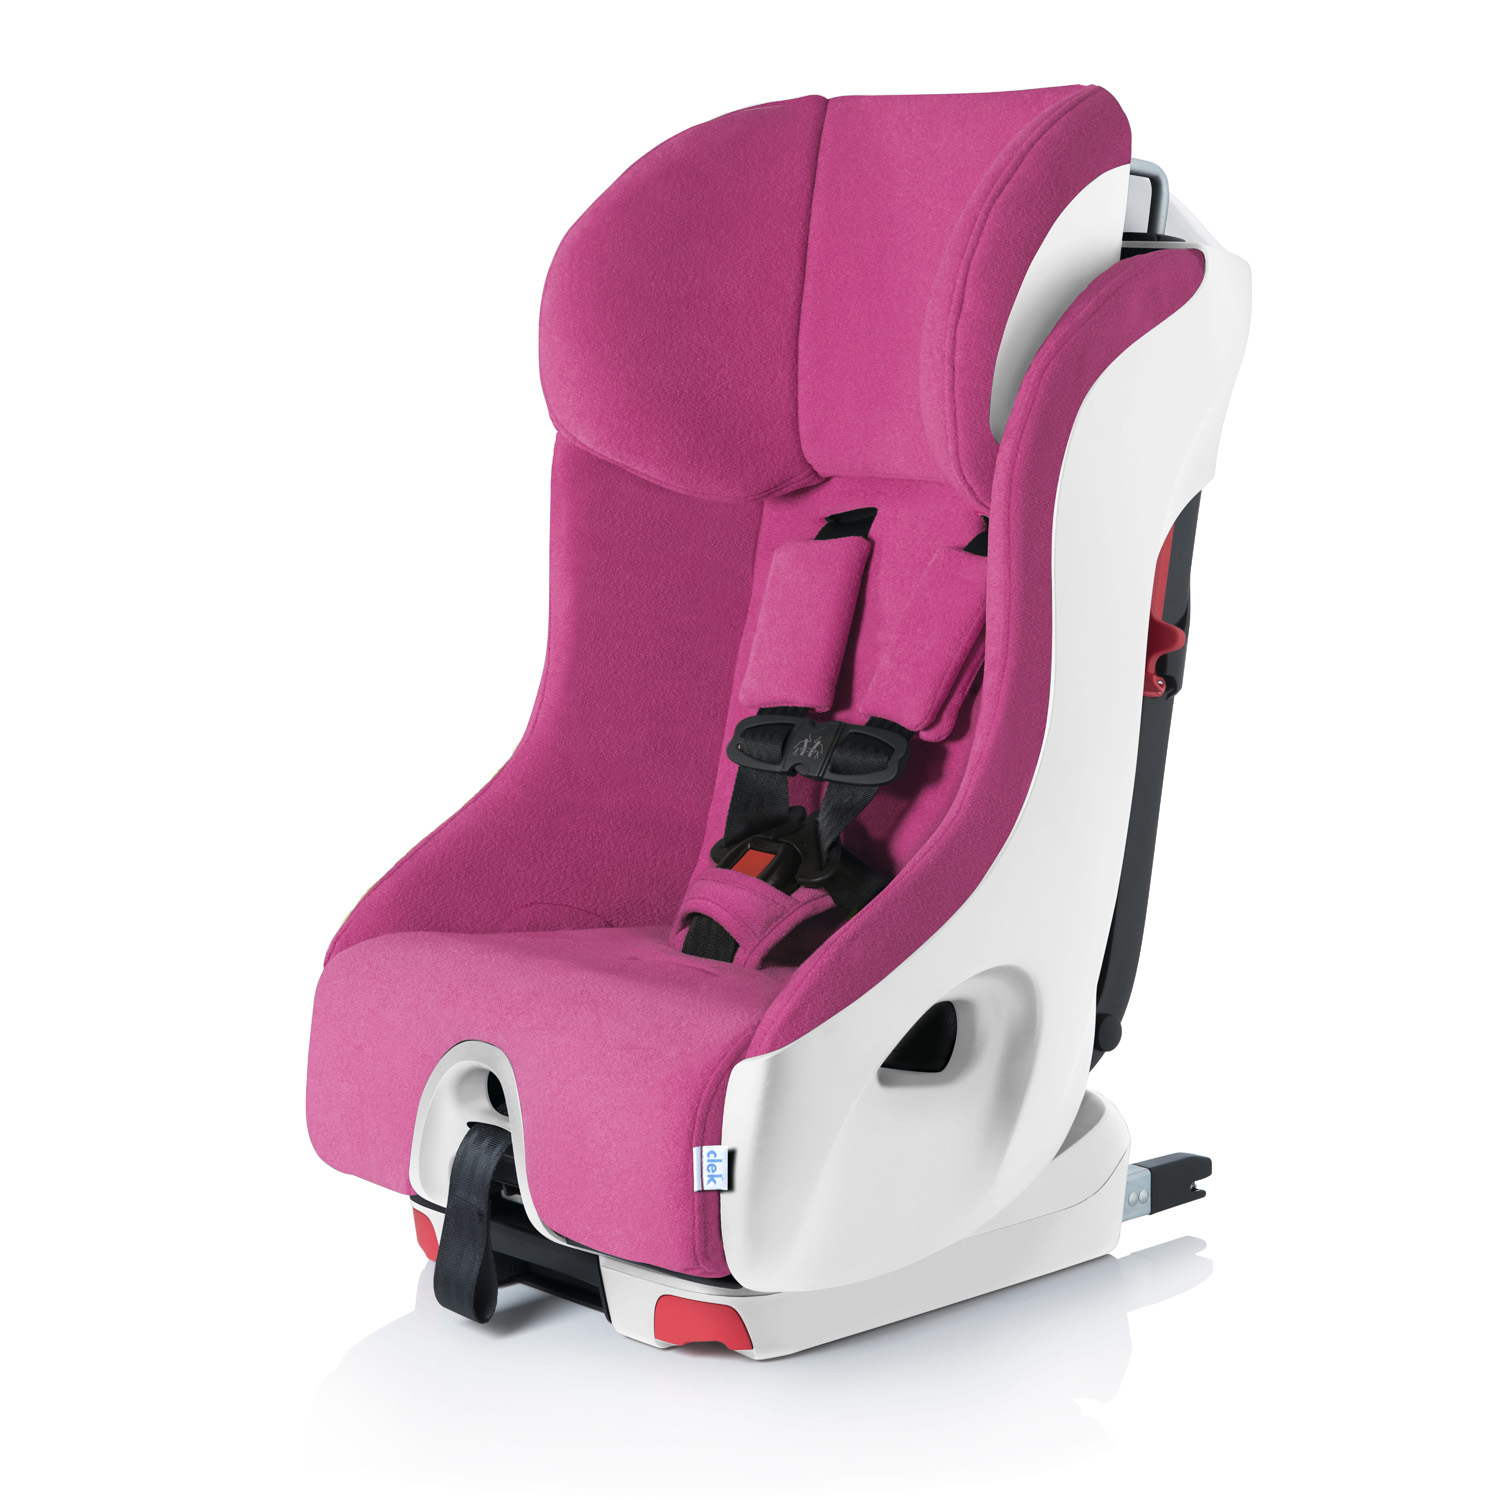 Clek 2020 Foonf Convertible Car Seat - Snowberry